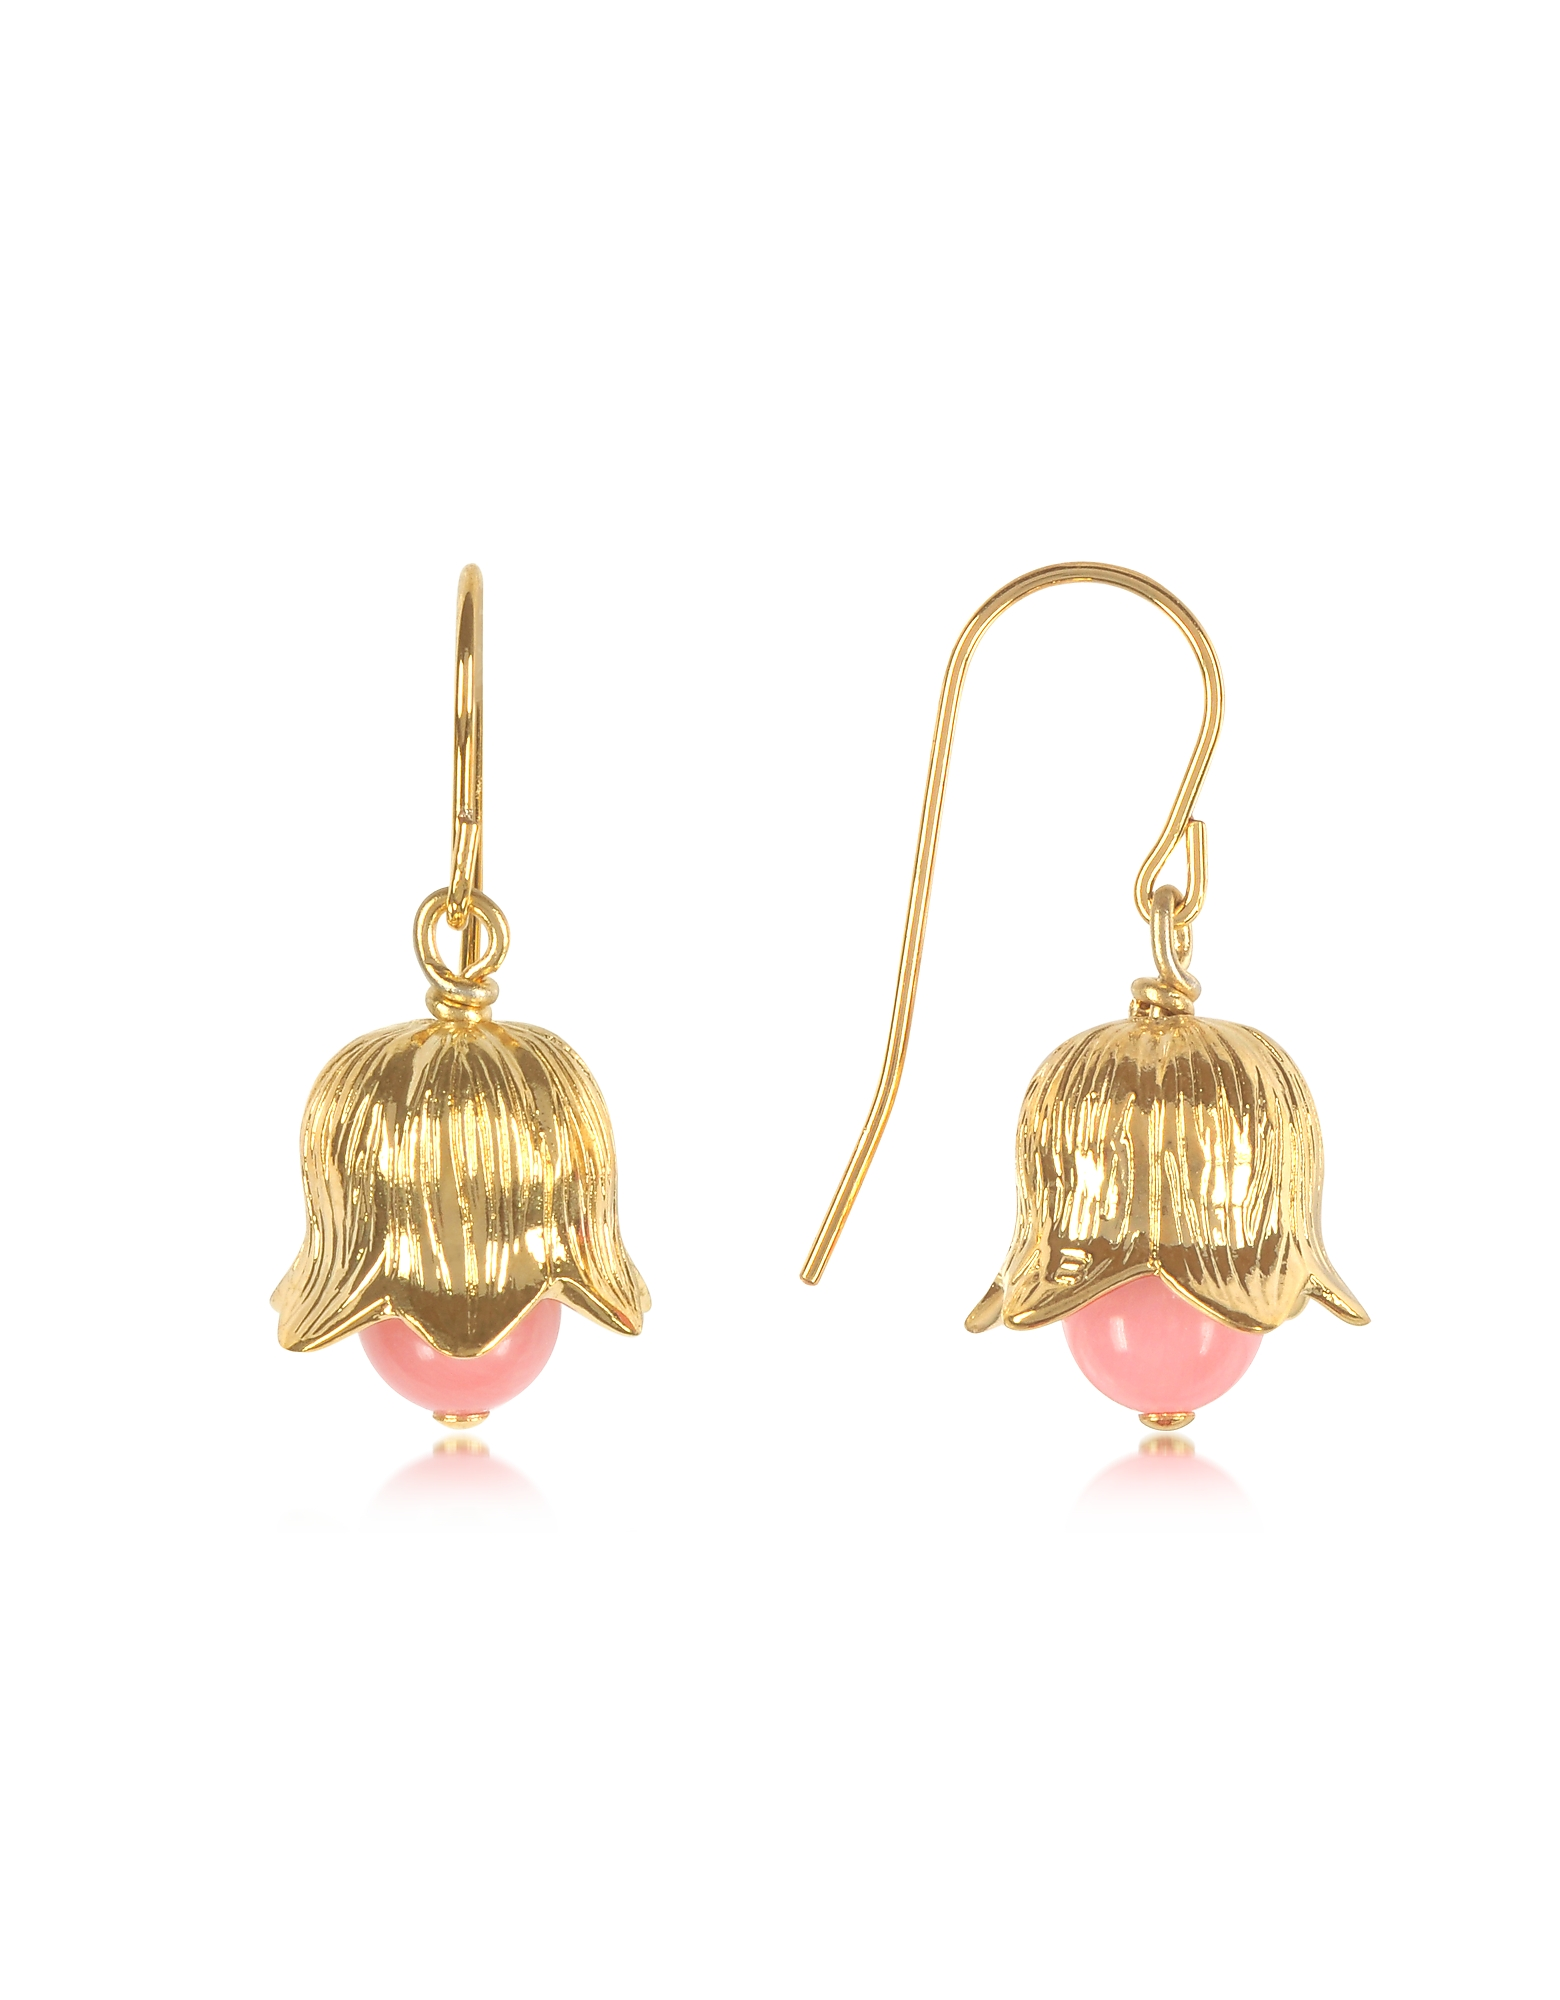 Aurelie Bidermann Earrings, 18K gold-plated Lily of the Valley Earrings w/Pink Bamboo Pearl